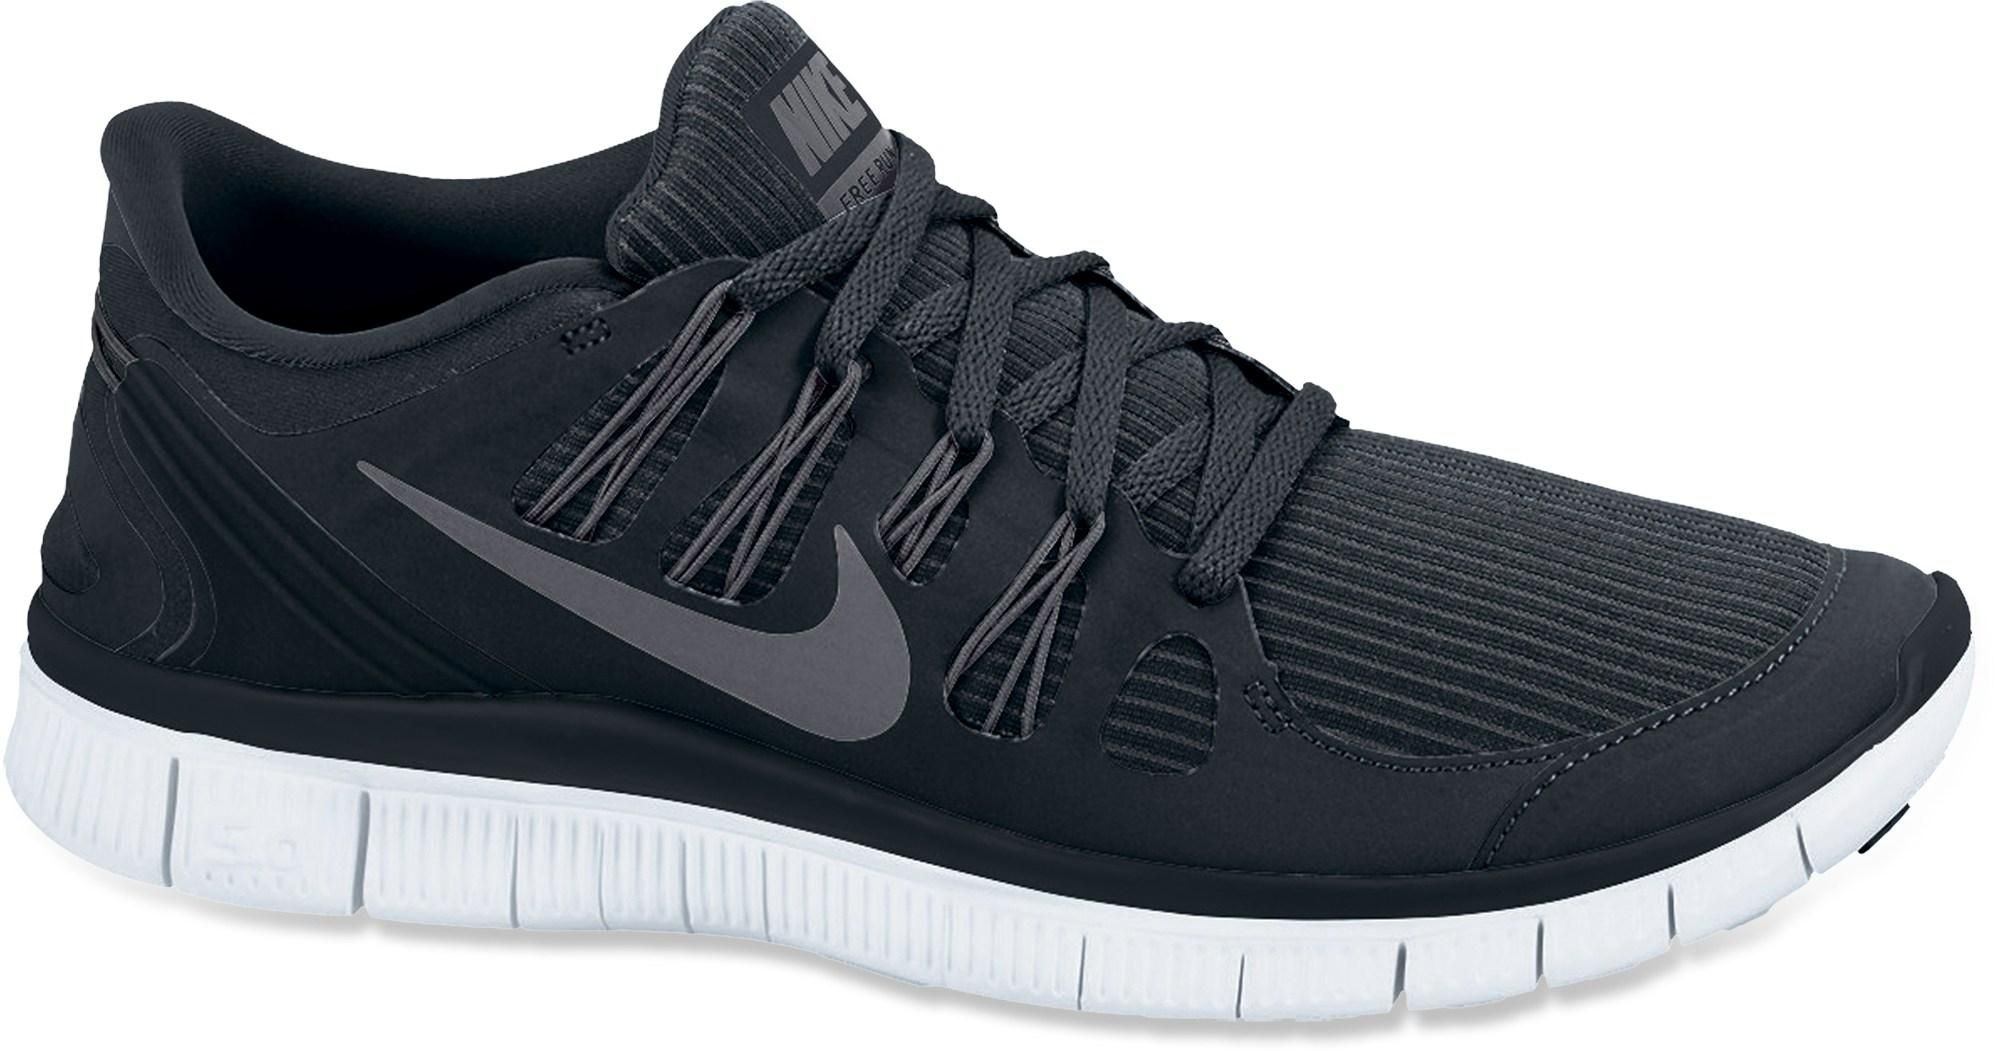 nike free 5.0 road-running shoes for men